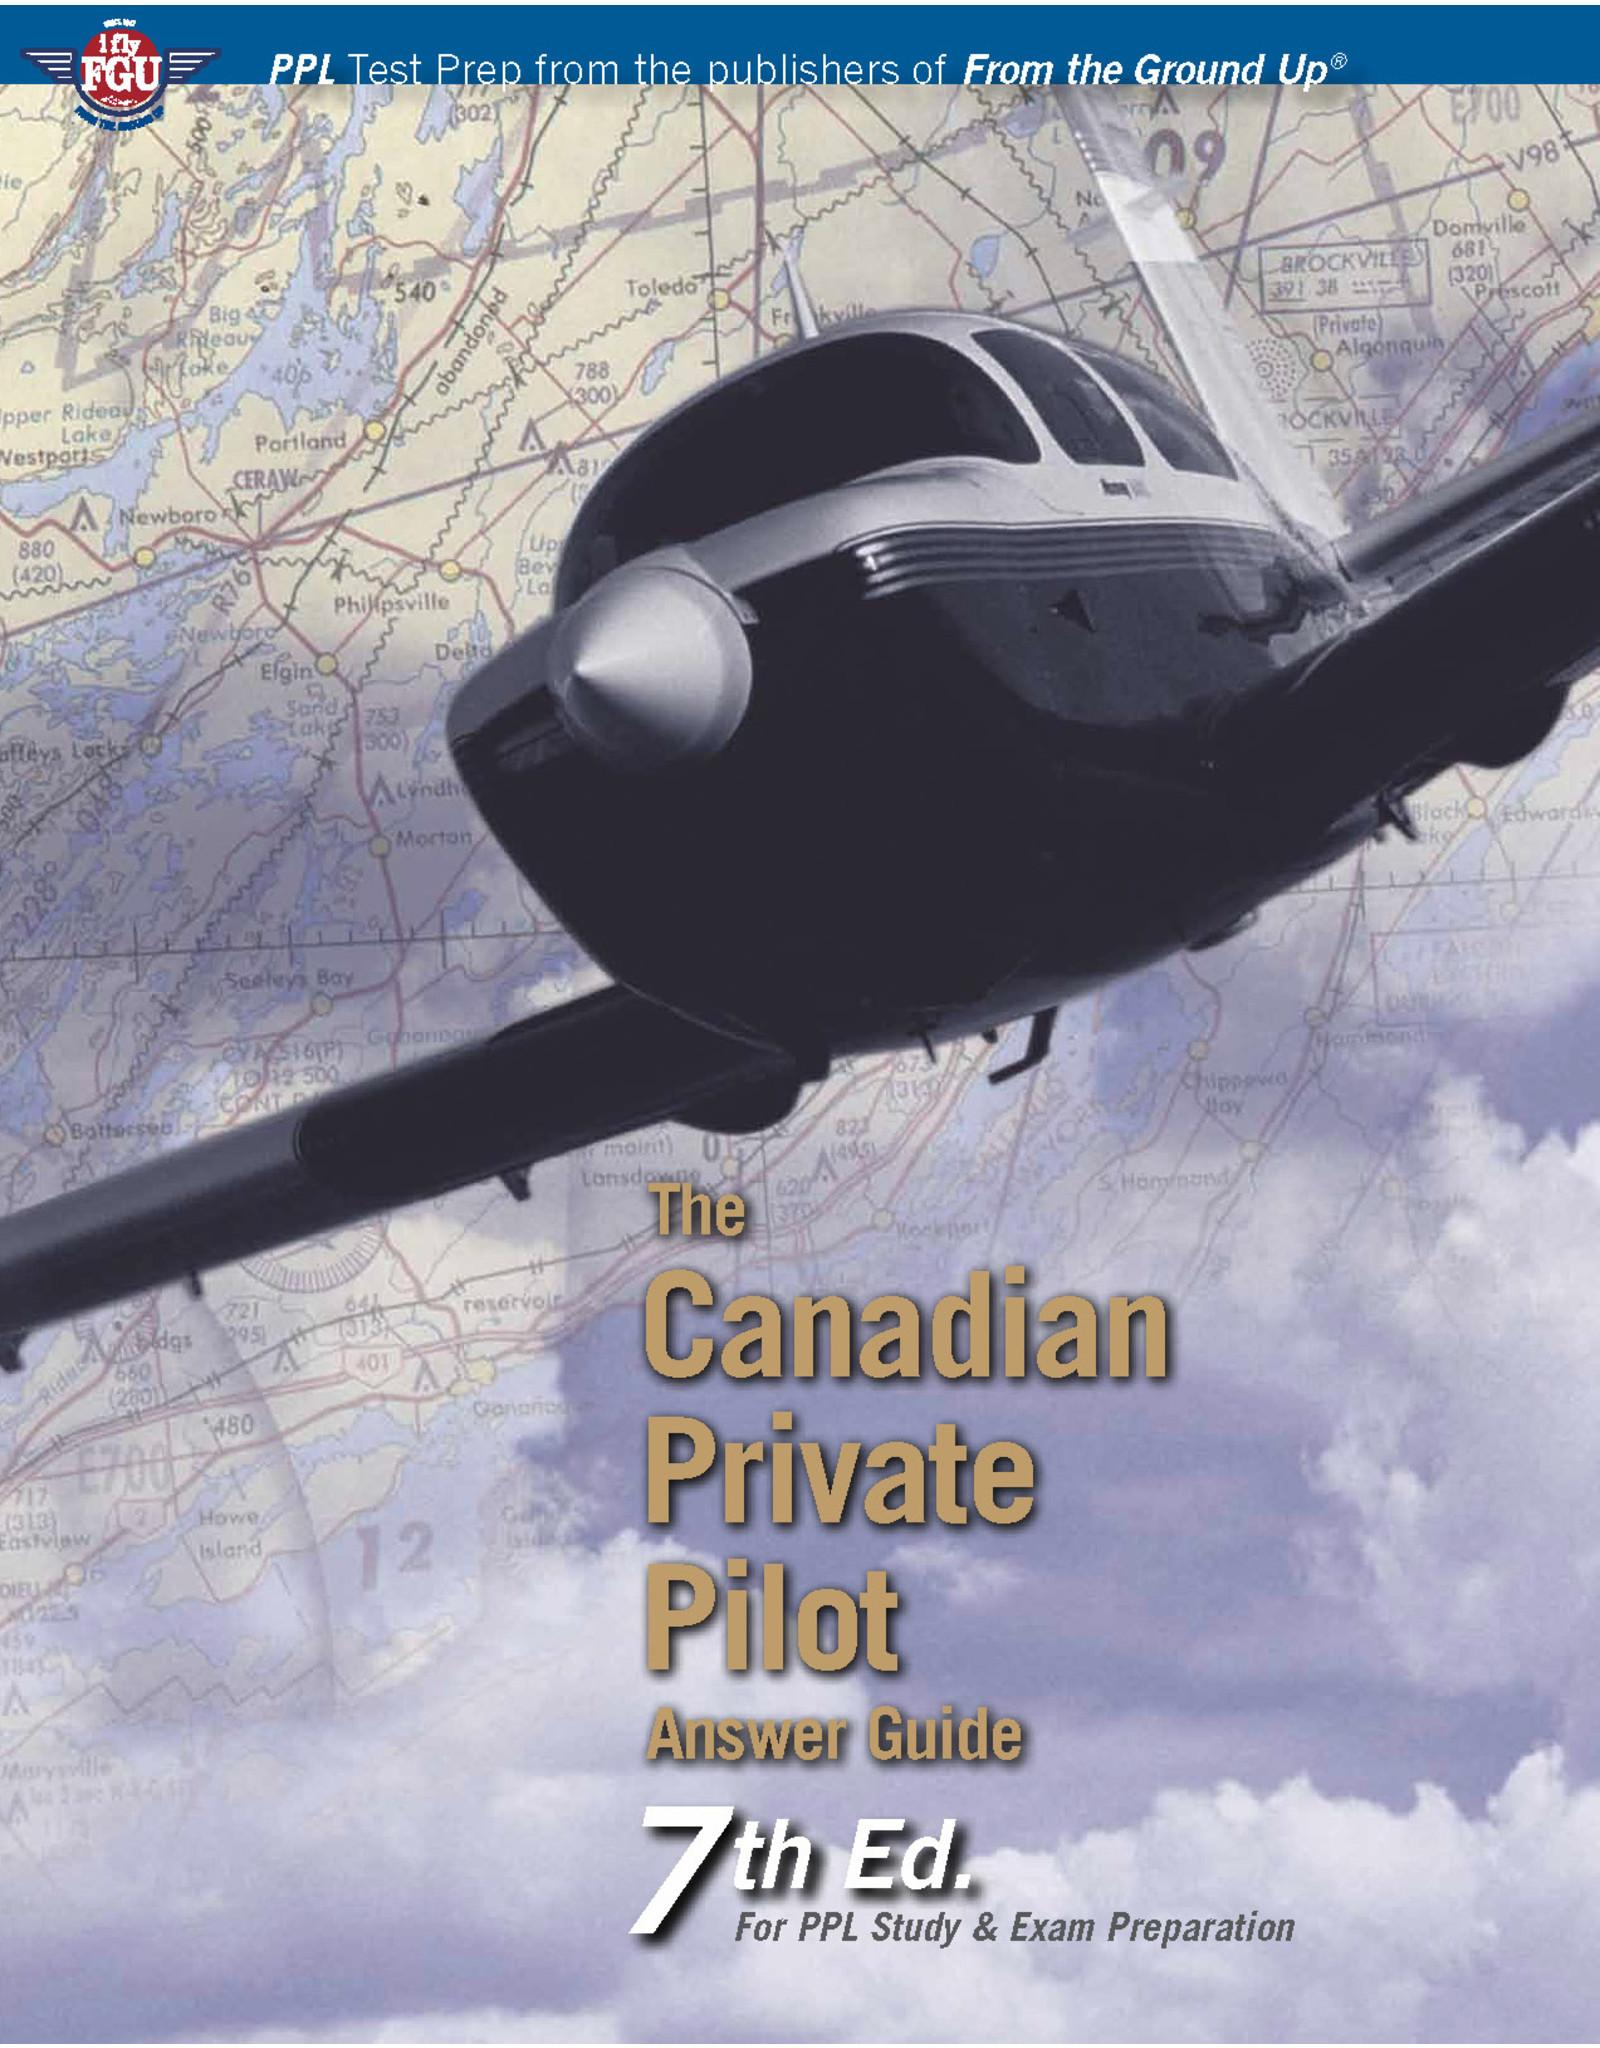 Aviation Publishers Canadian Private Pilot Answer Guide 7th Ed.